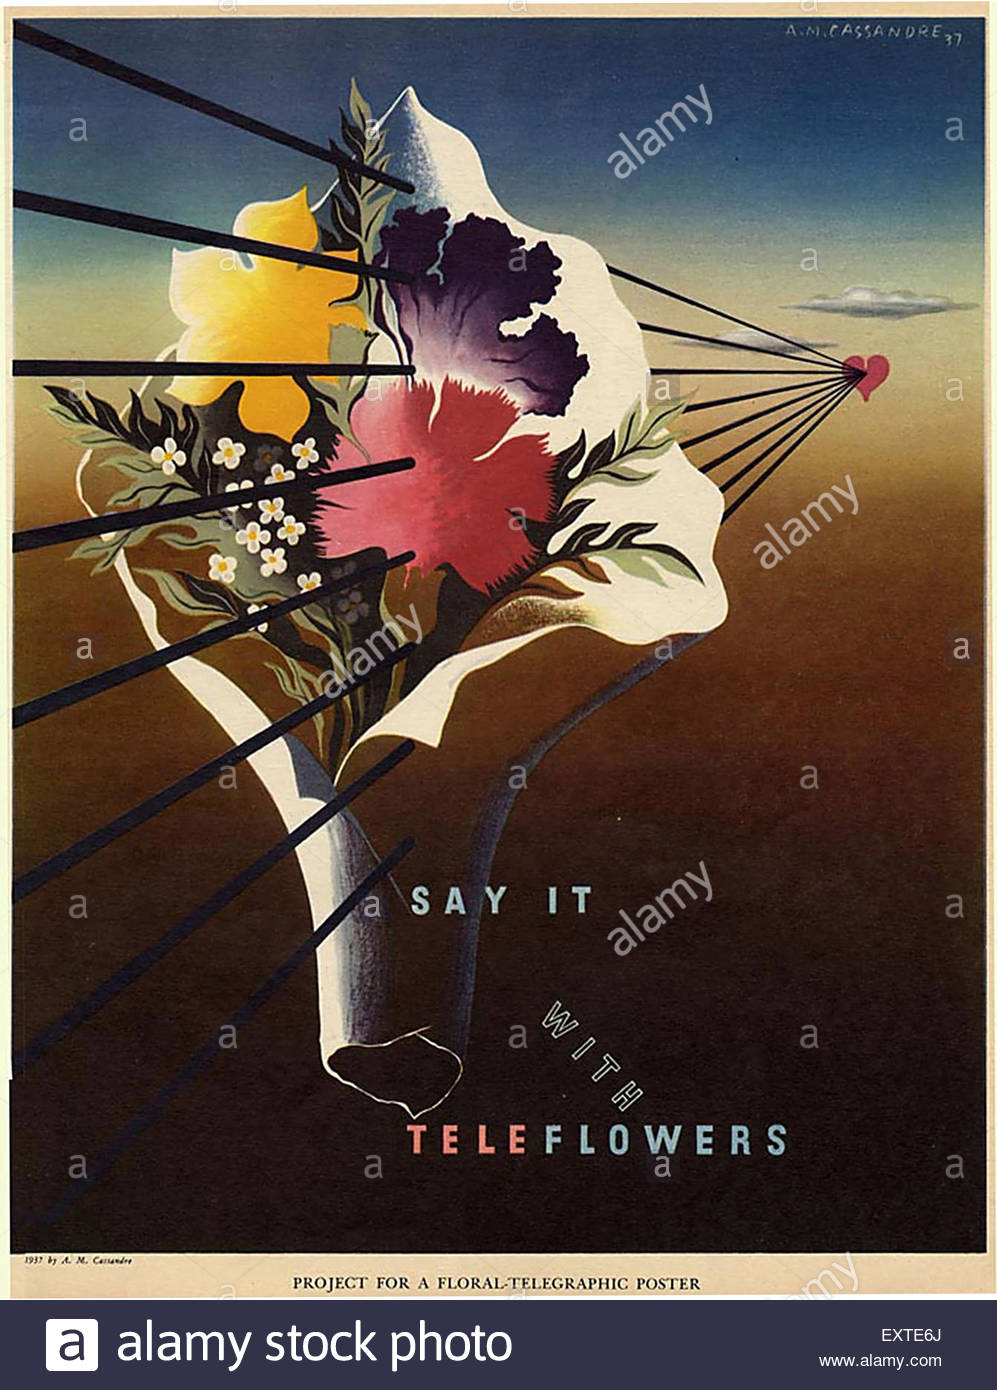 1930s USA Teleflowers Poster - Stock Image